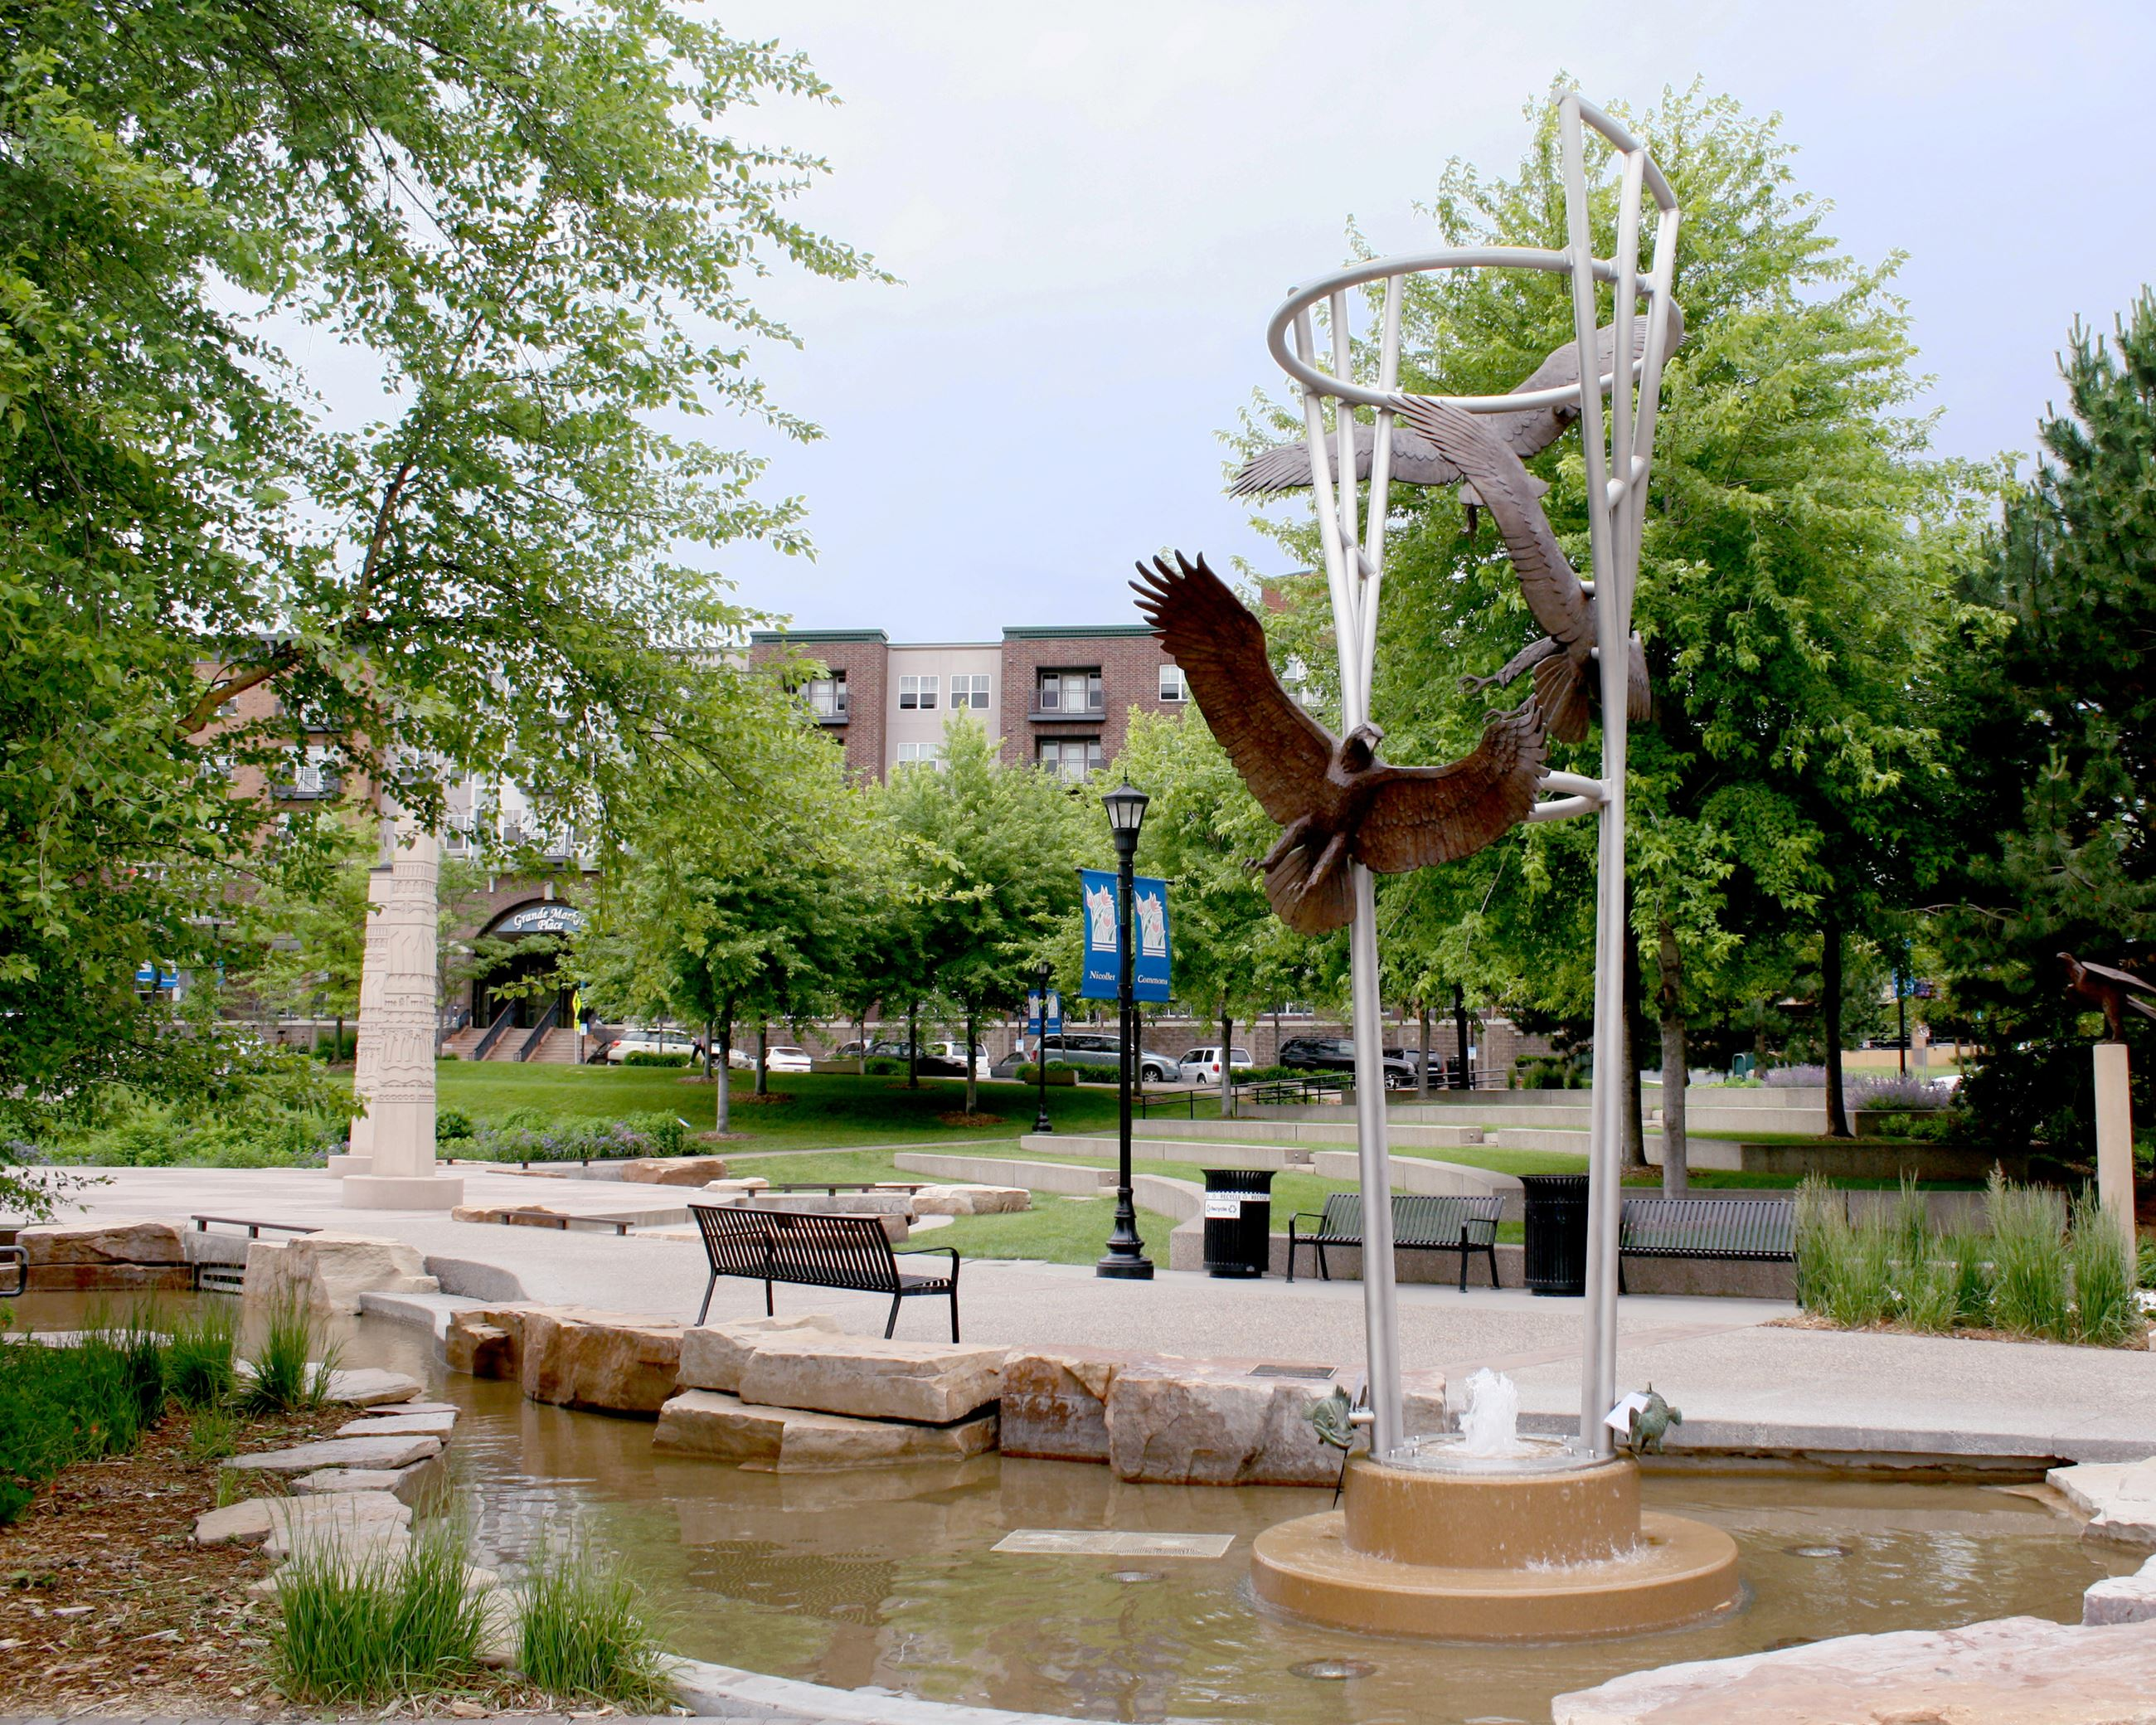 ASCENT sculpture in Nicollet Commons Park